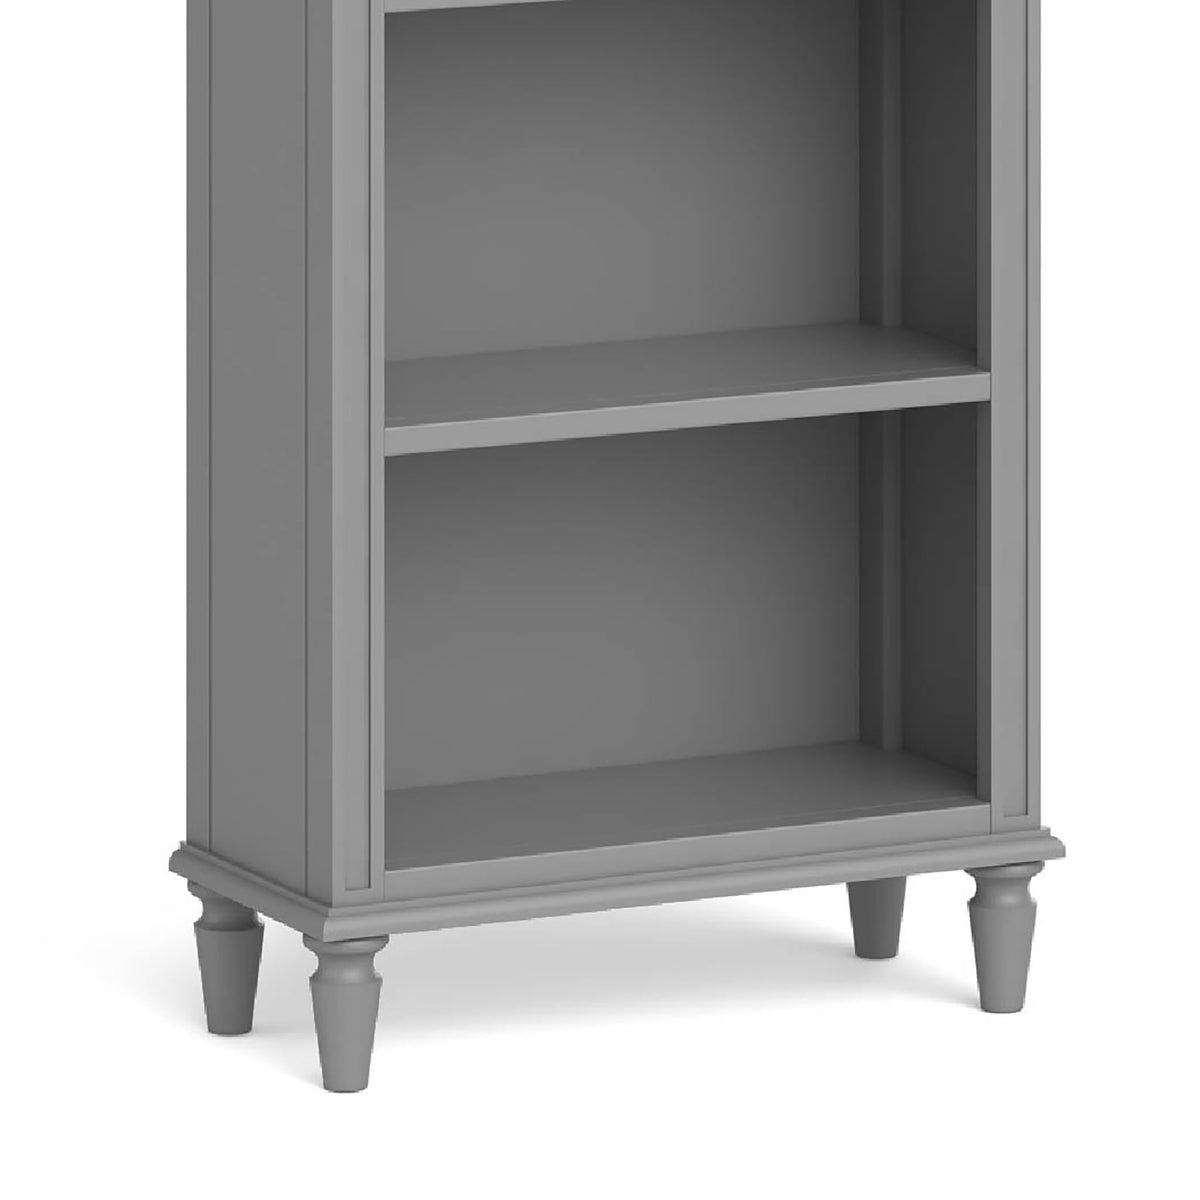 The Mulsanne Grey Slim Bookcase - Close Up of Base of Bookcase